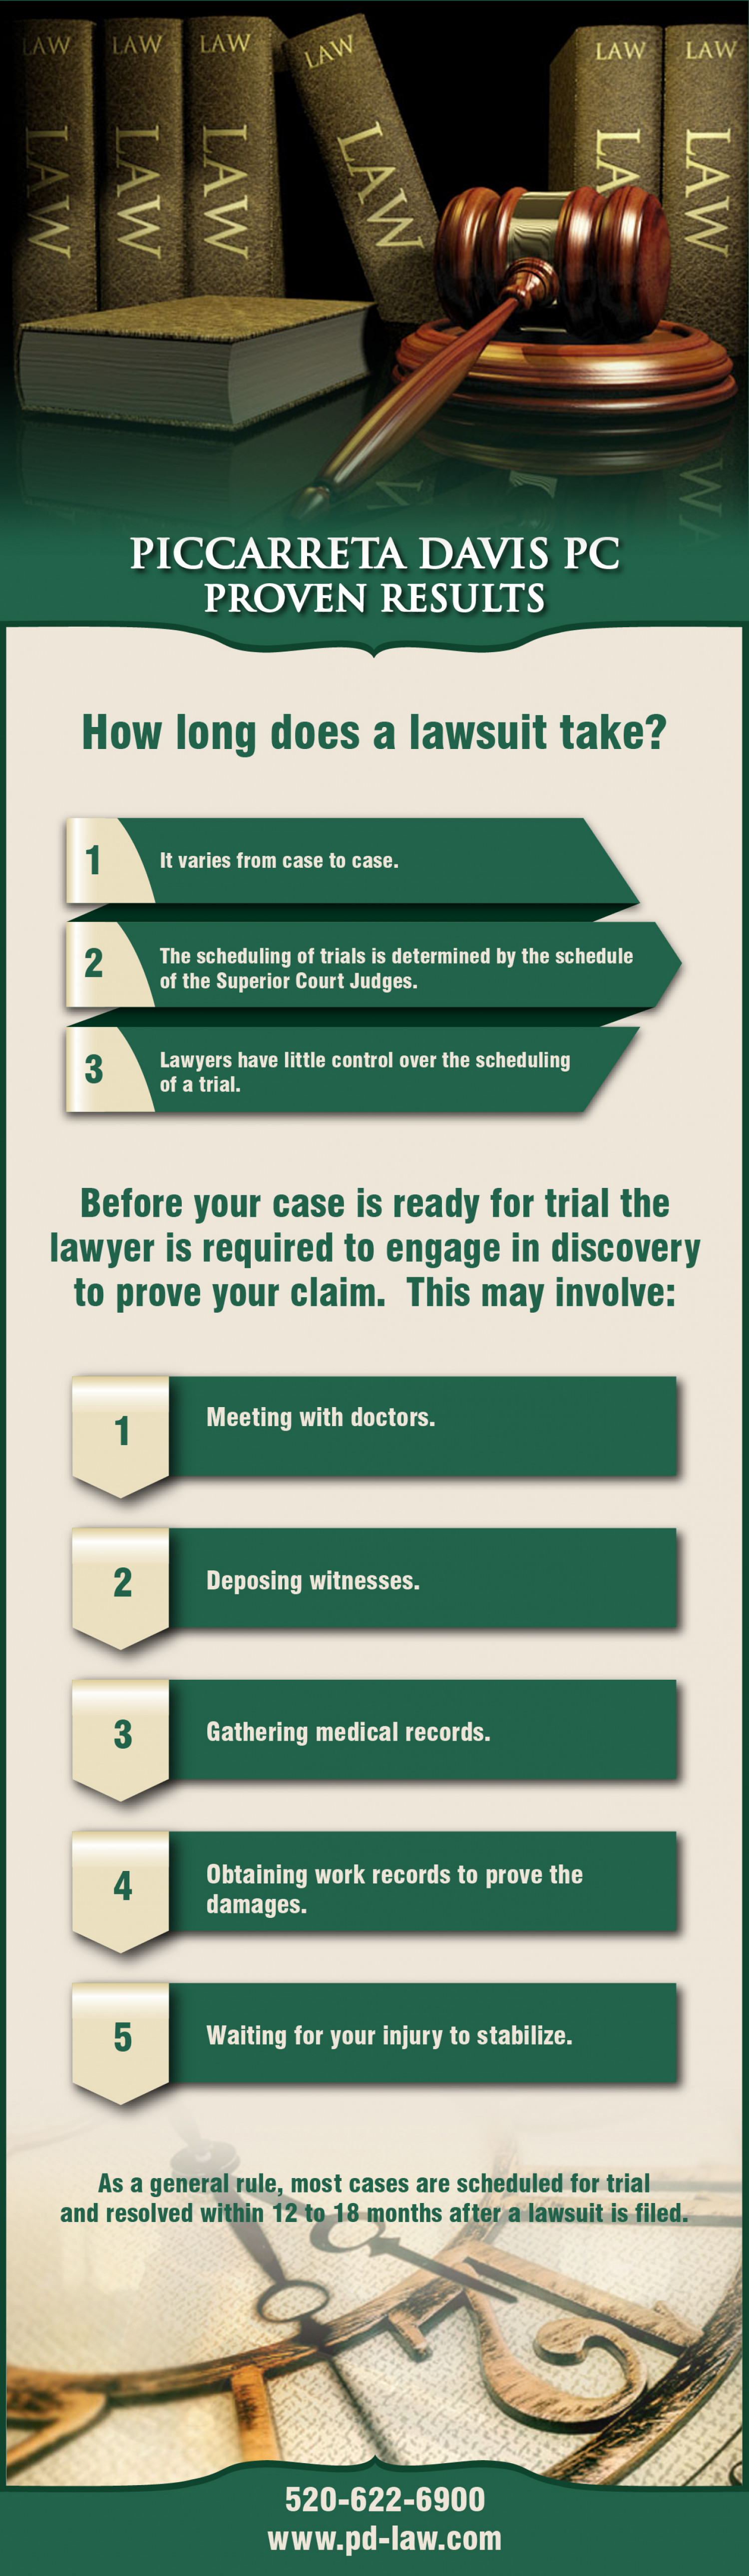 How Long Does A Lawsuit Take Infographic